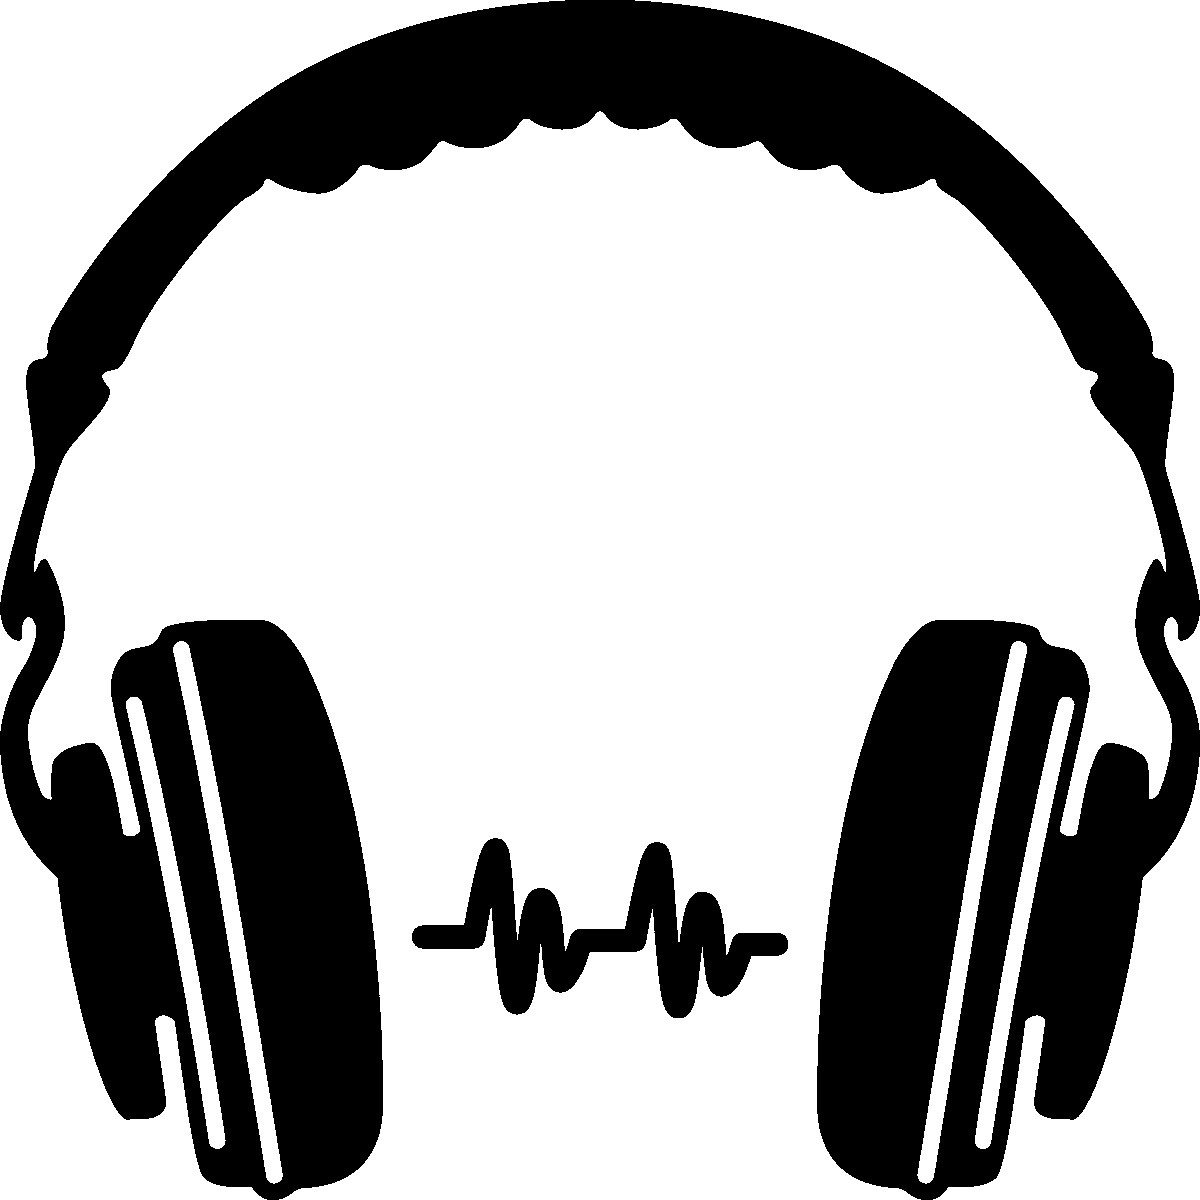 Headphones Png Clipart PNG Image